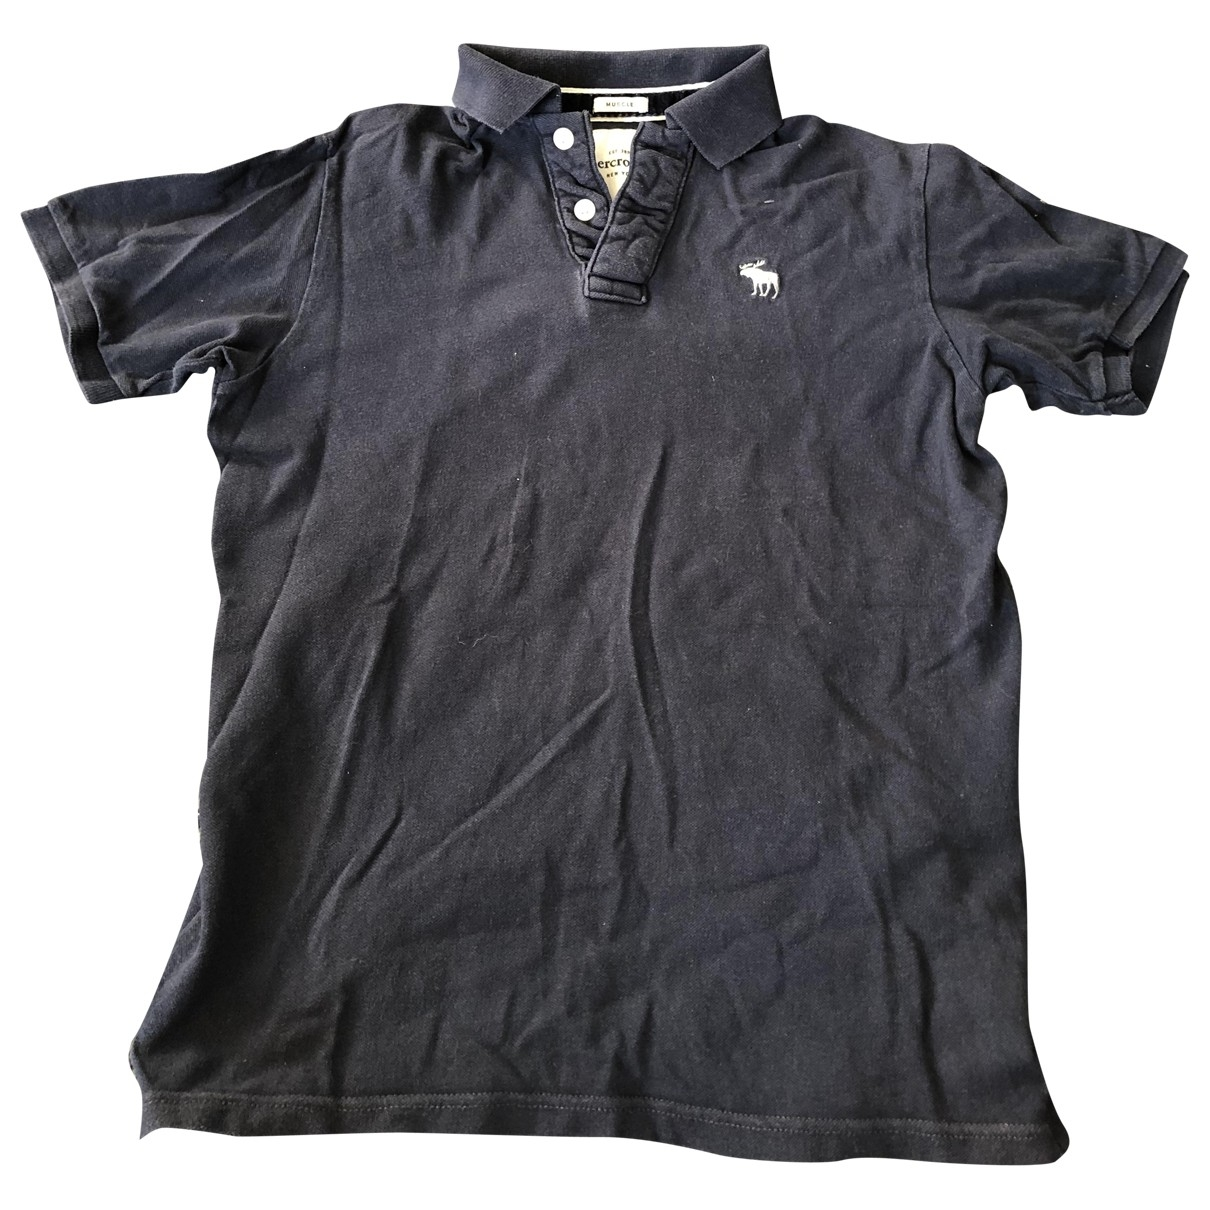 Abercrombie & Fitch \N Navy Cotton  top for Kids 20 years - XL UK